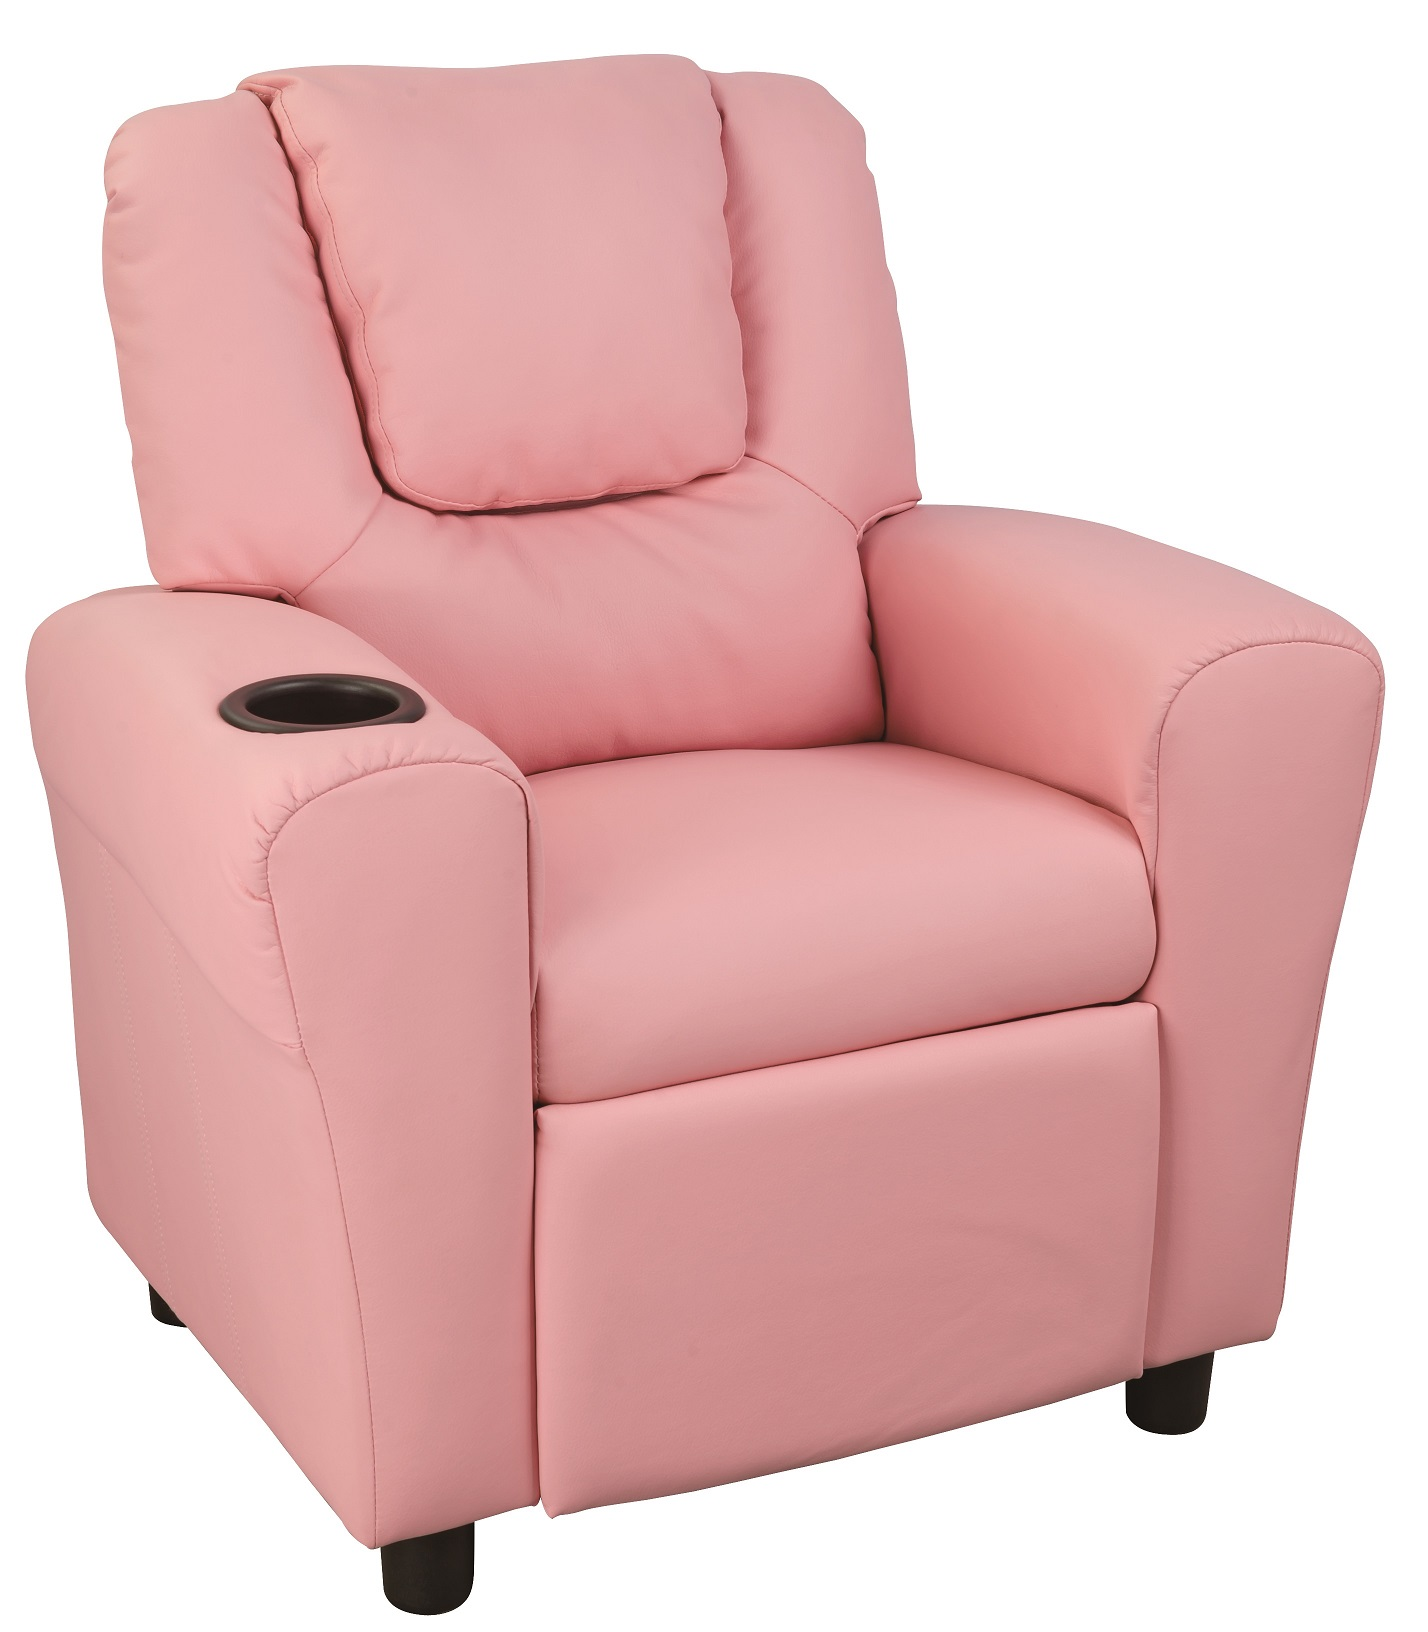 PU Leather Kids Recliner with Drink Holder  Z2321